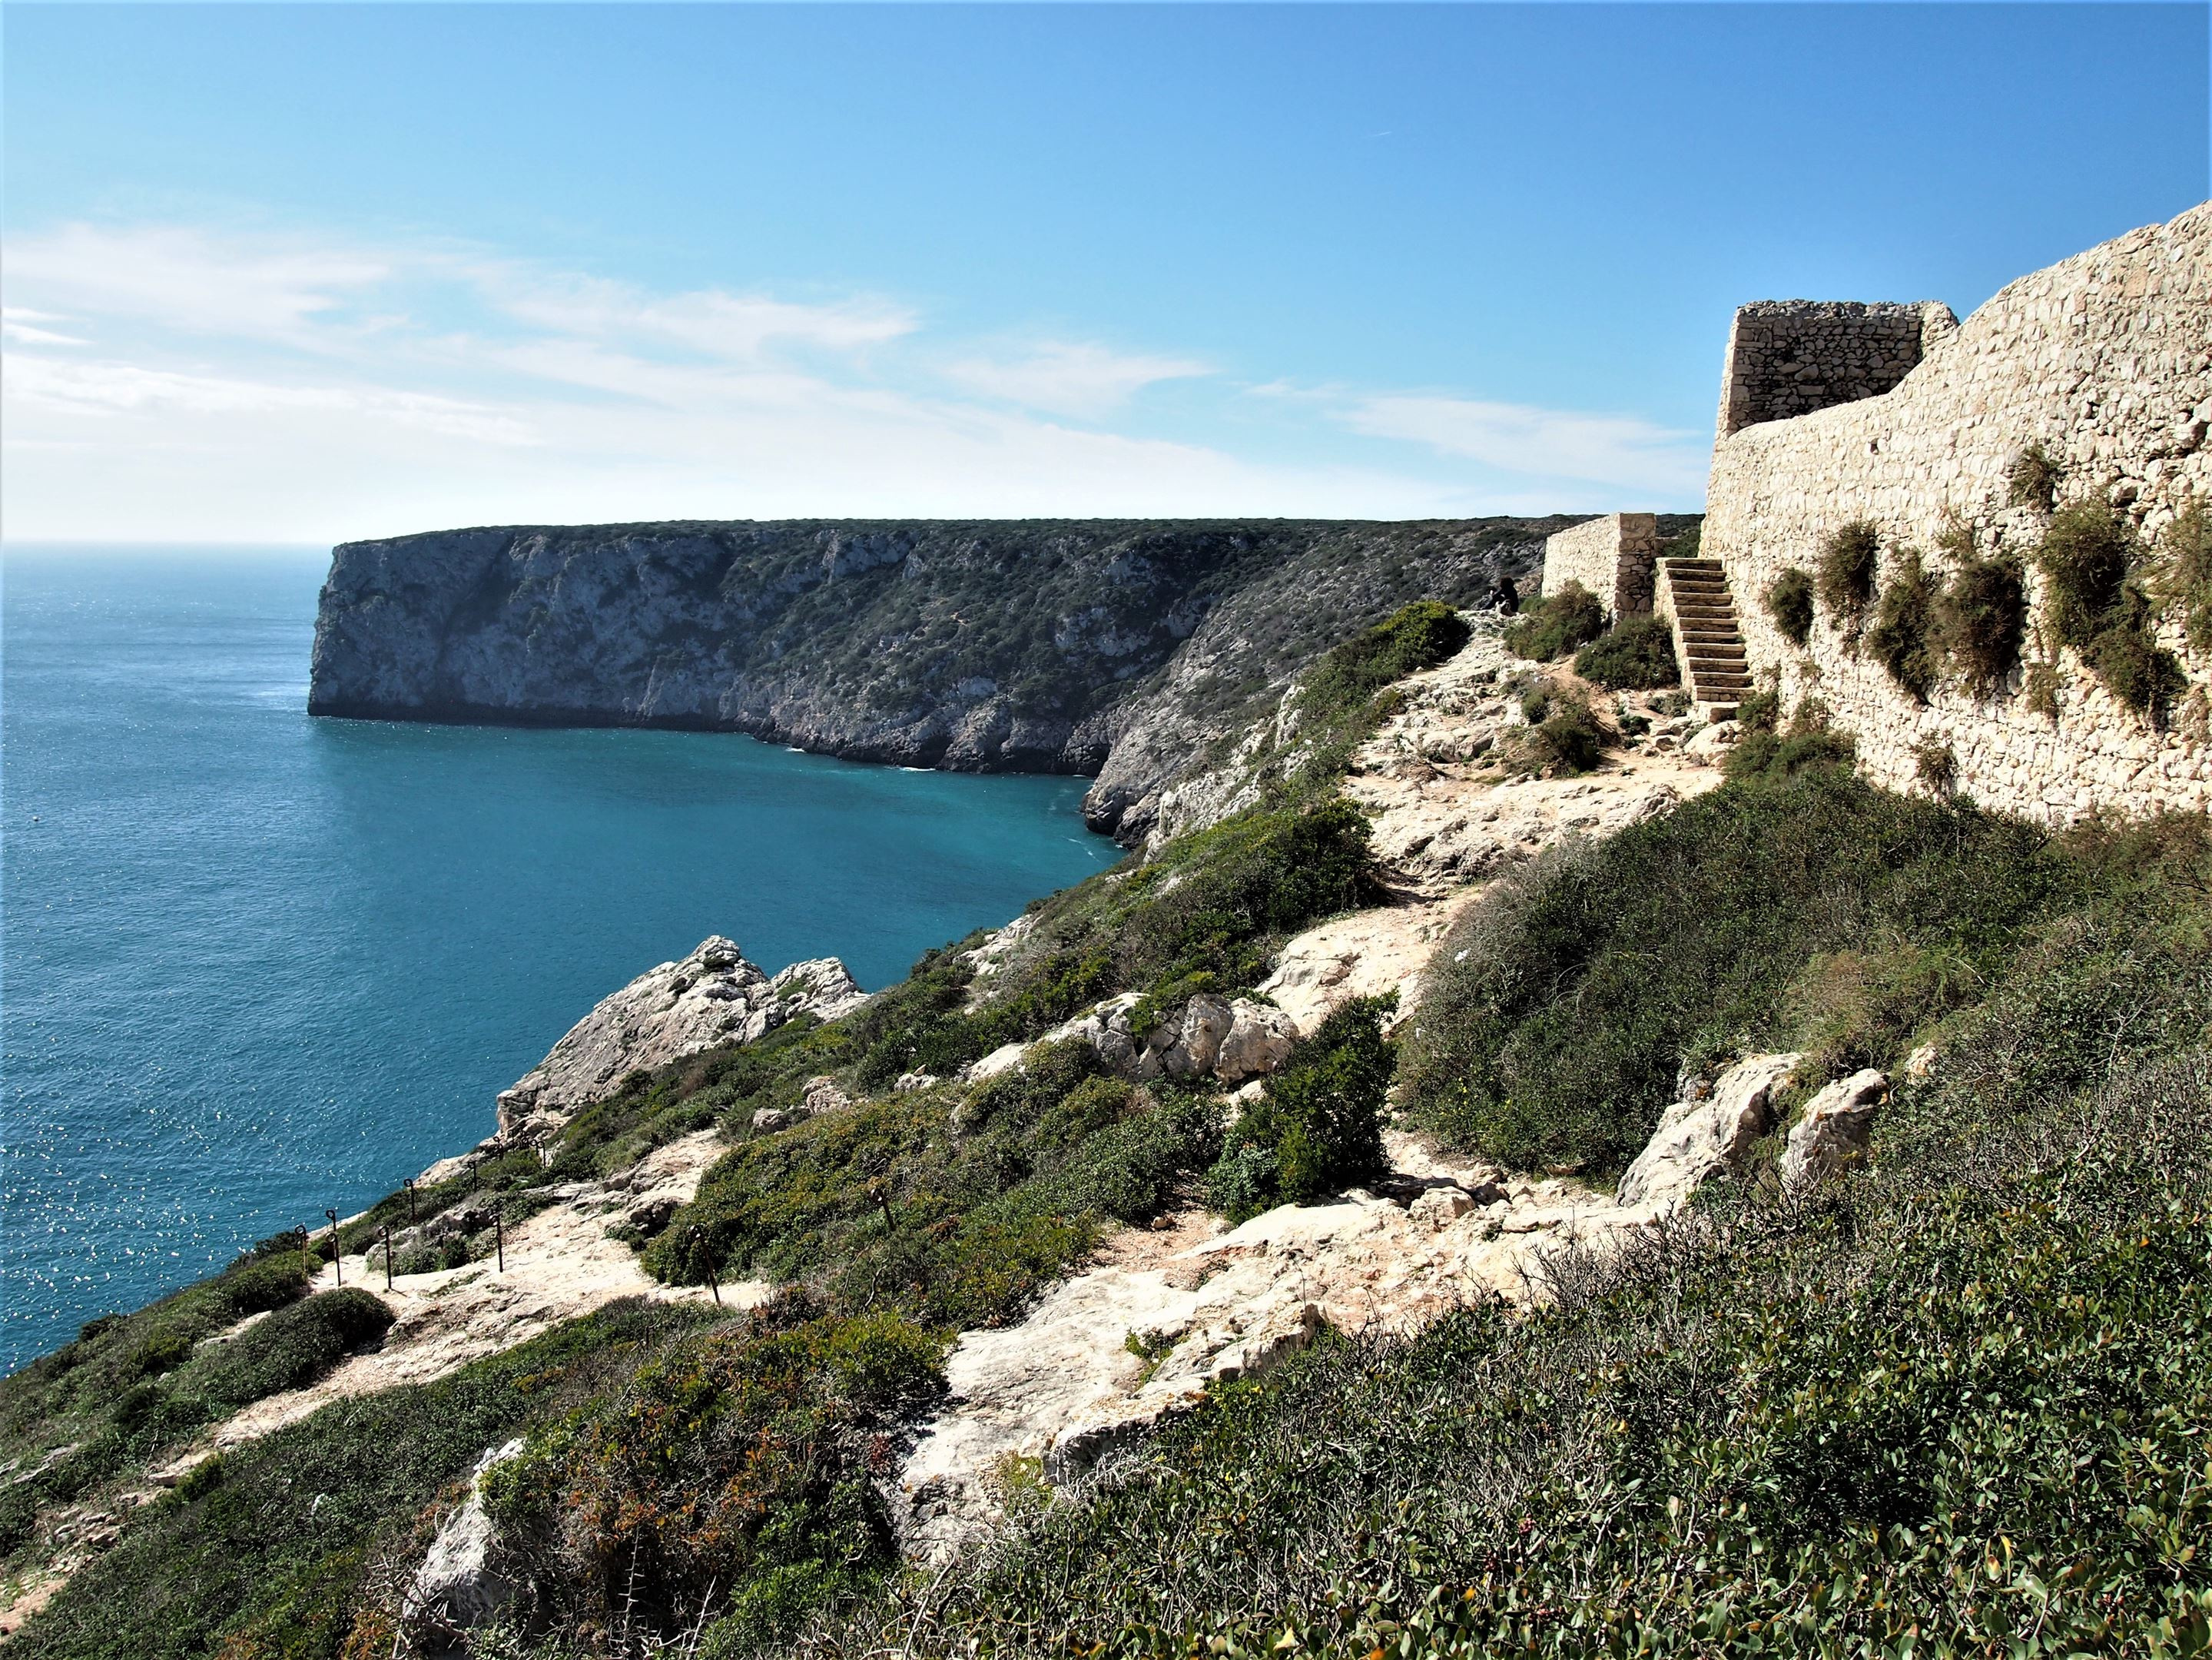 View of the cliffs and walls of the fort at Fortaleza de Beliche, Sagres